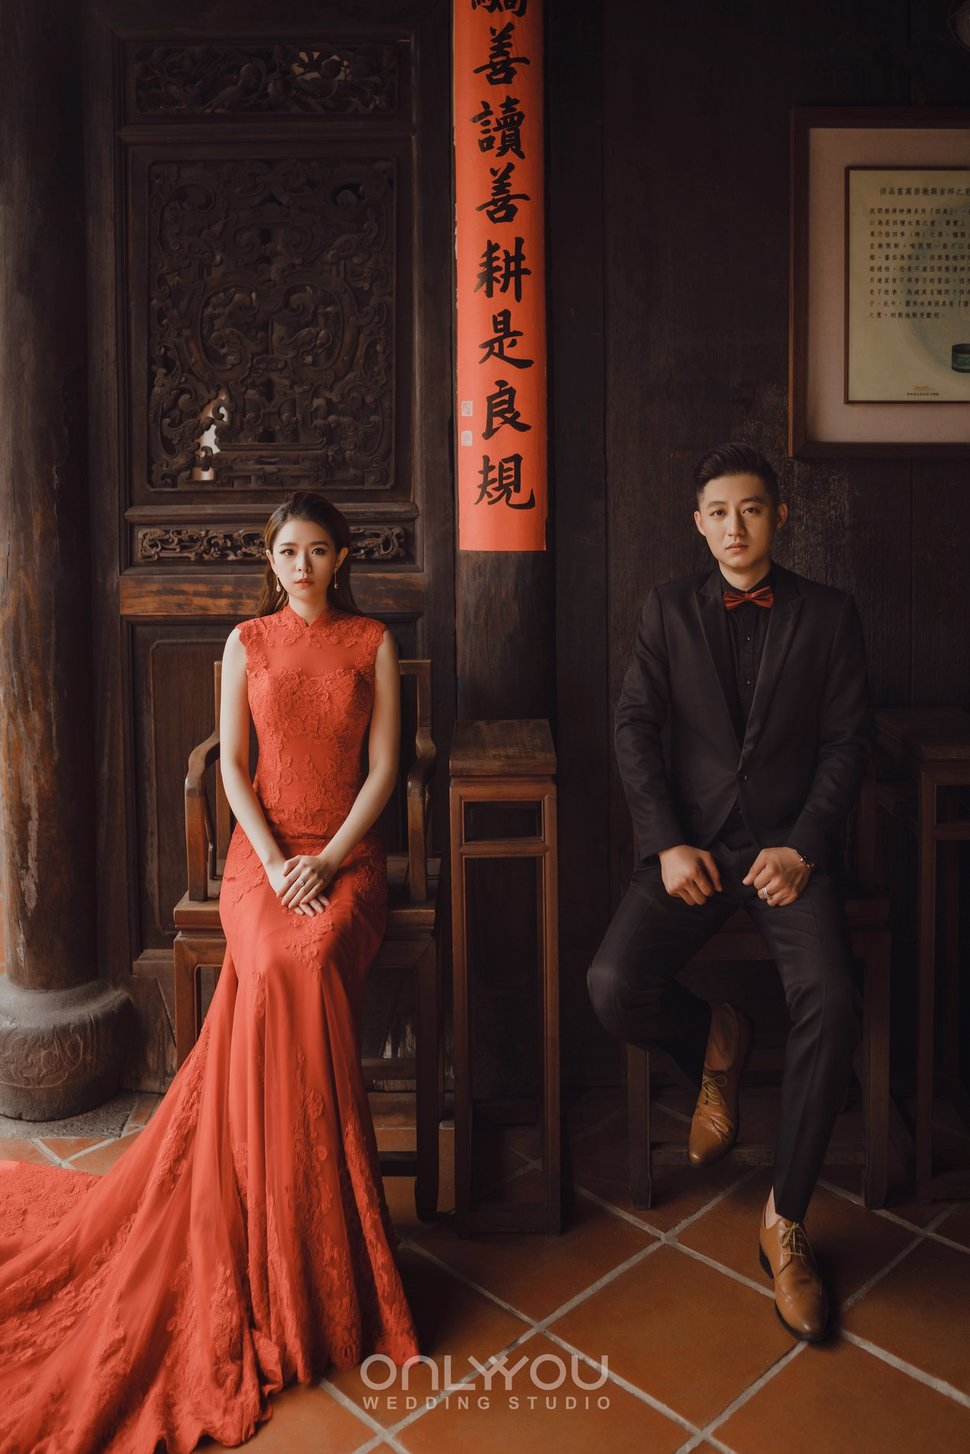 66483826_2258081787580788_7473319846105579520_o - ONLY YOU 唯你婚紗攝影《結婚吧》